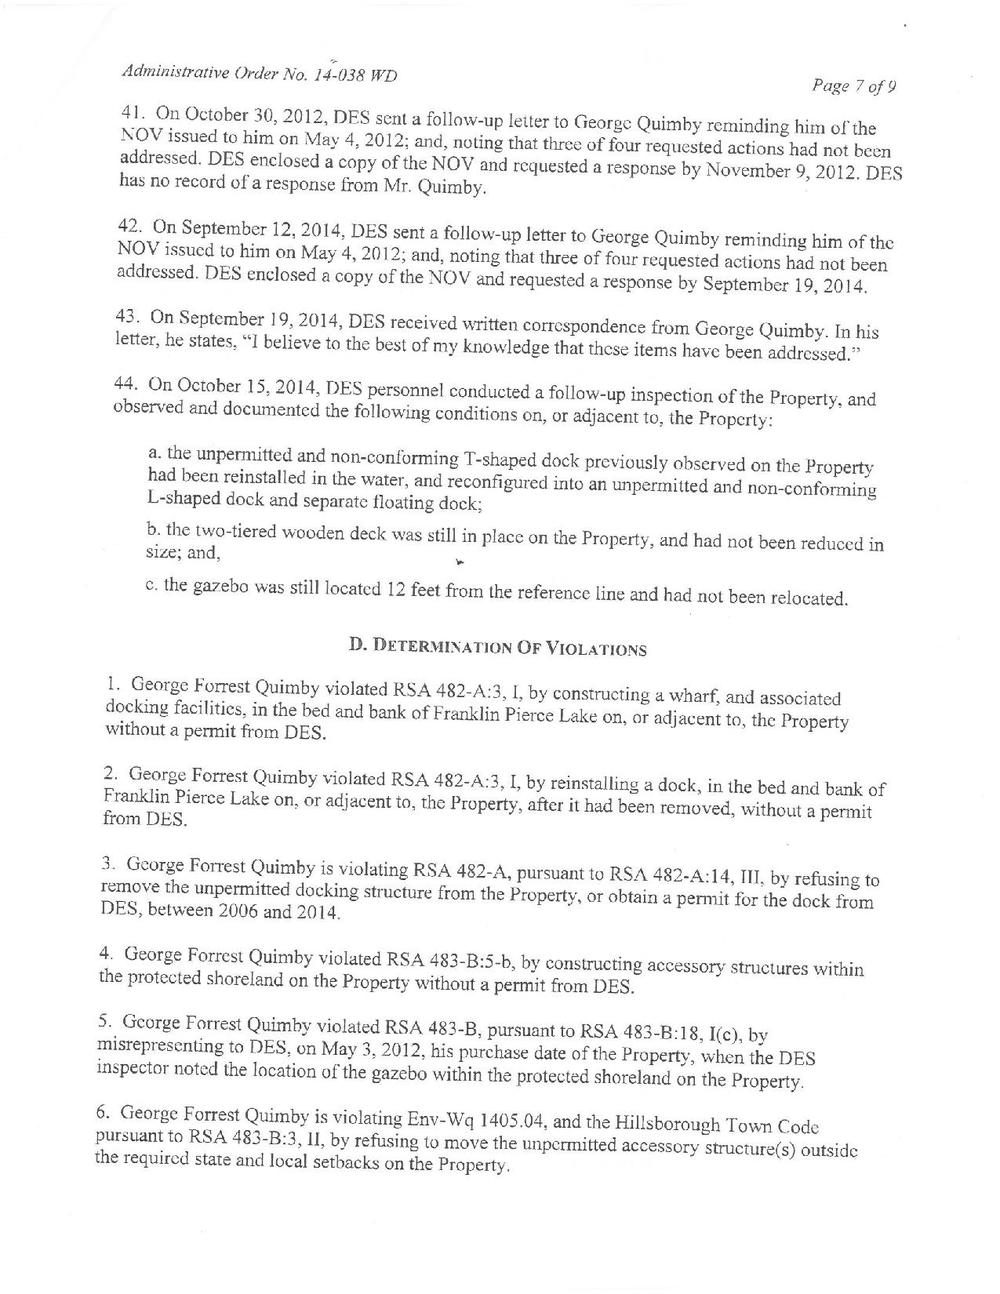 A list of violations from the Administrative Order that eventually led to the removal of the deck.